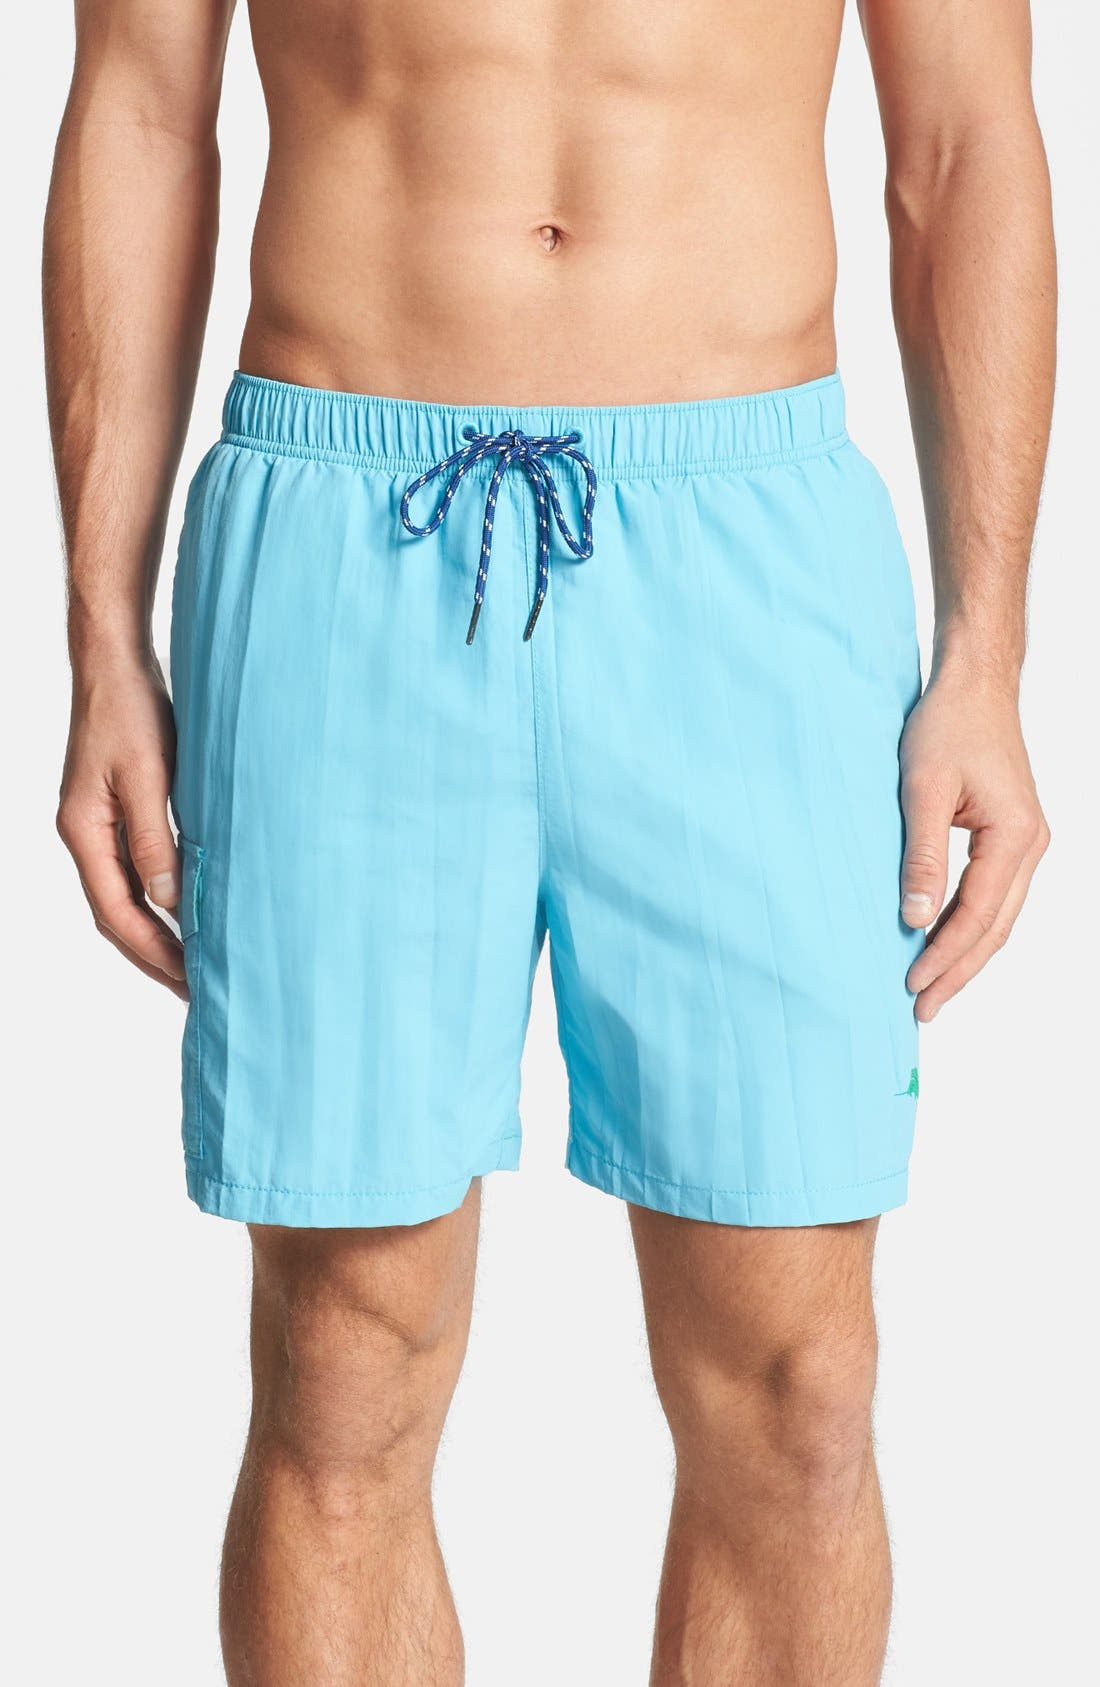 Naples Happy Go Cargo Swim Trunks,                             Main thumbnail 1, color,                             400